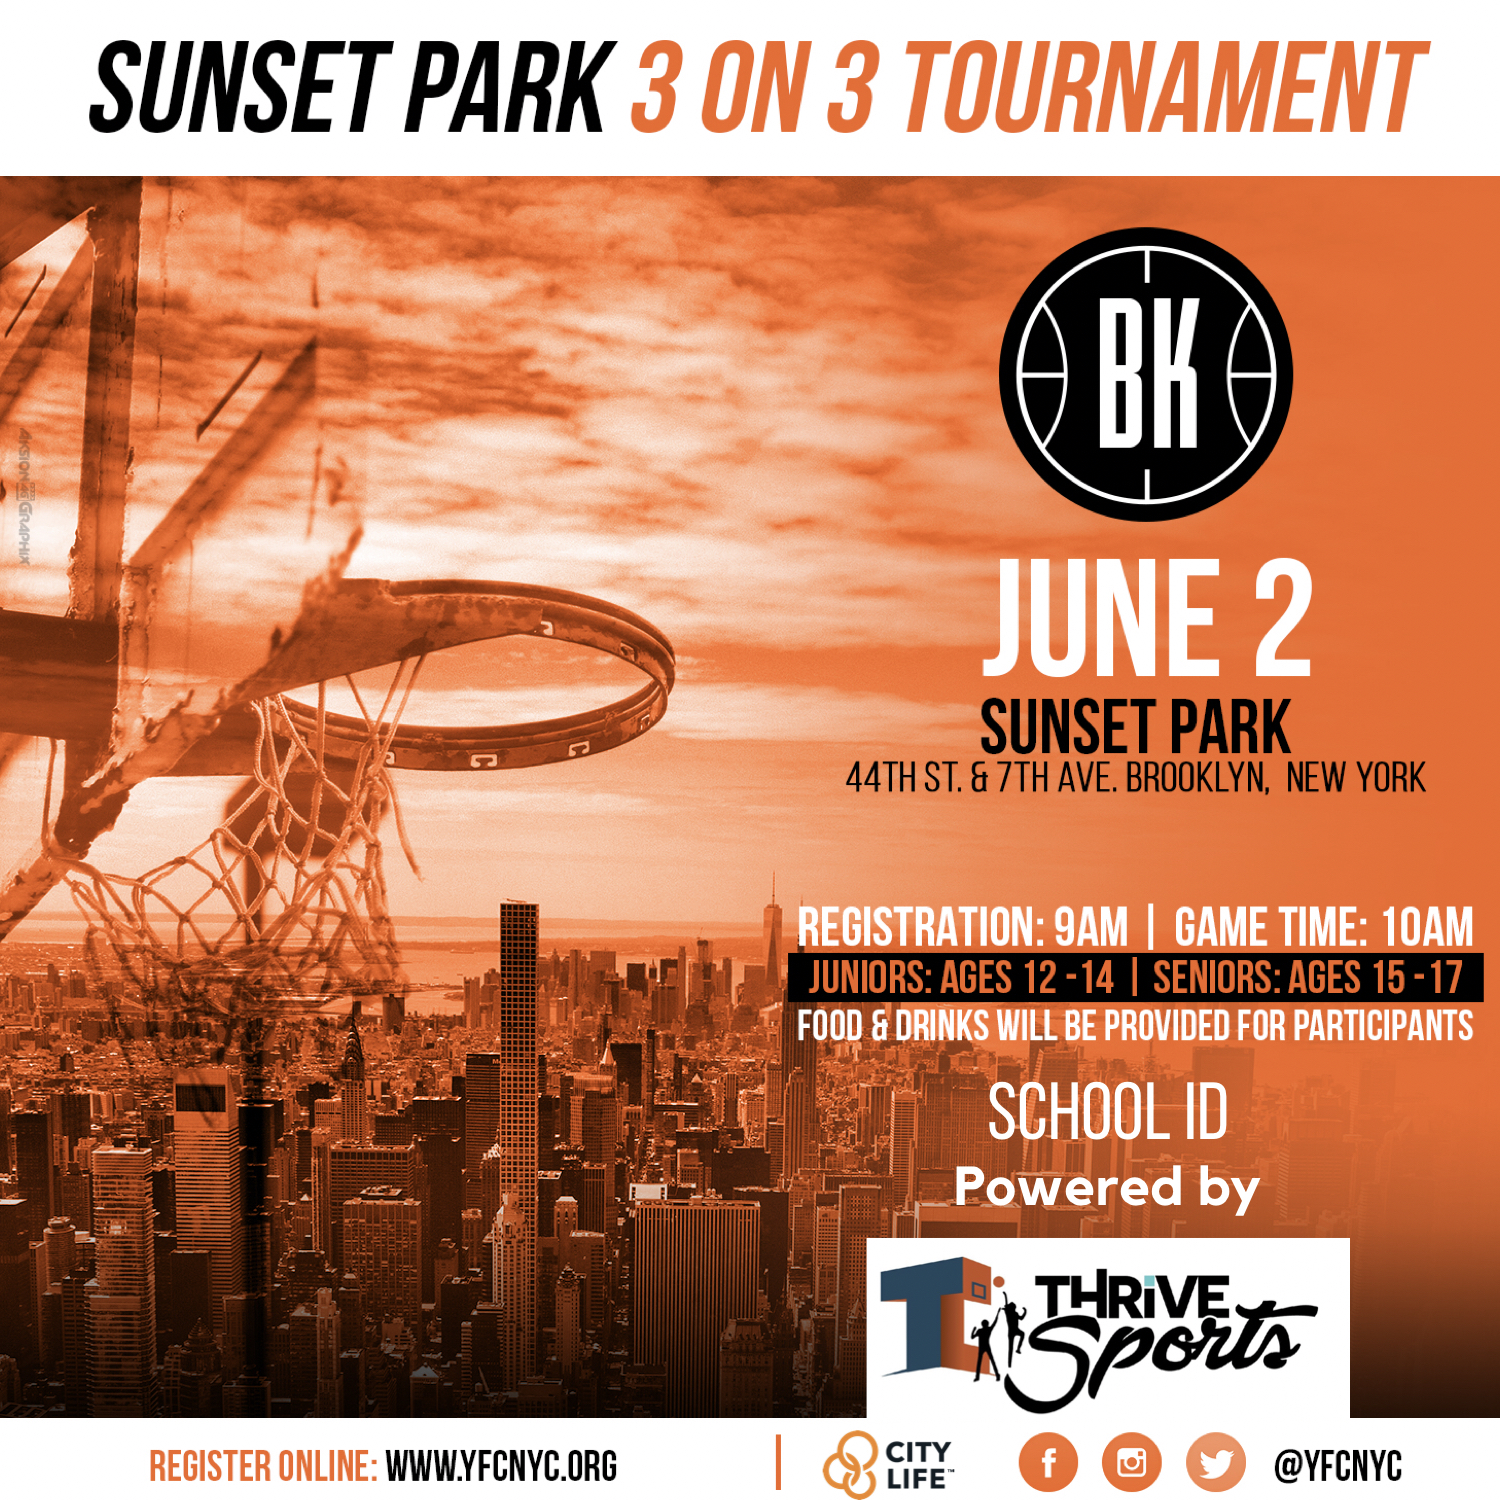 thrive sports 3 on 3 basketball tournament